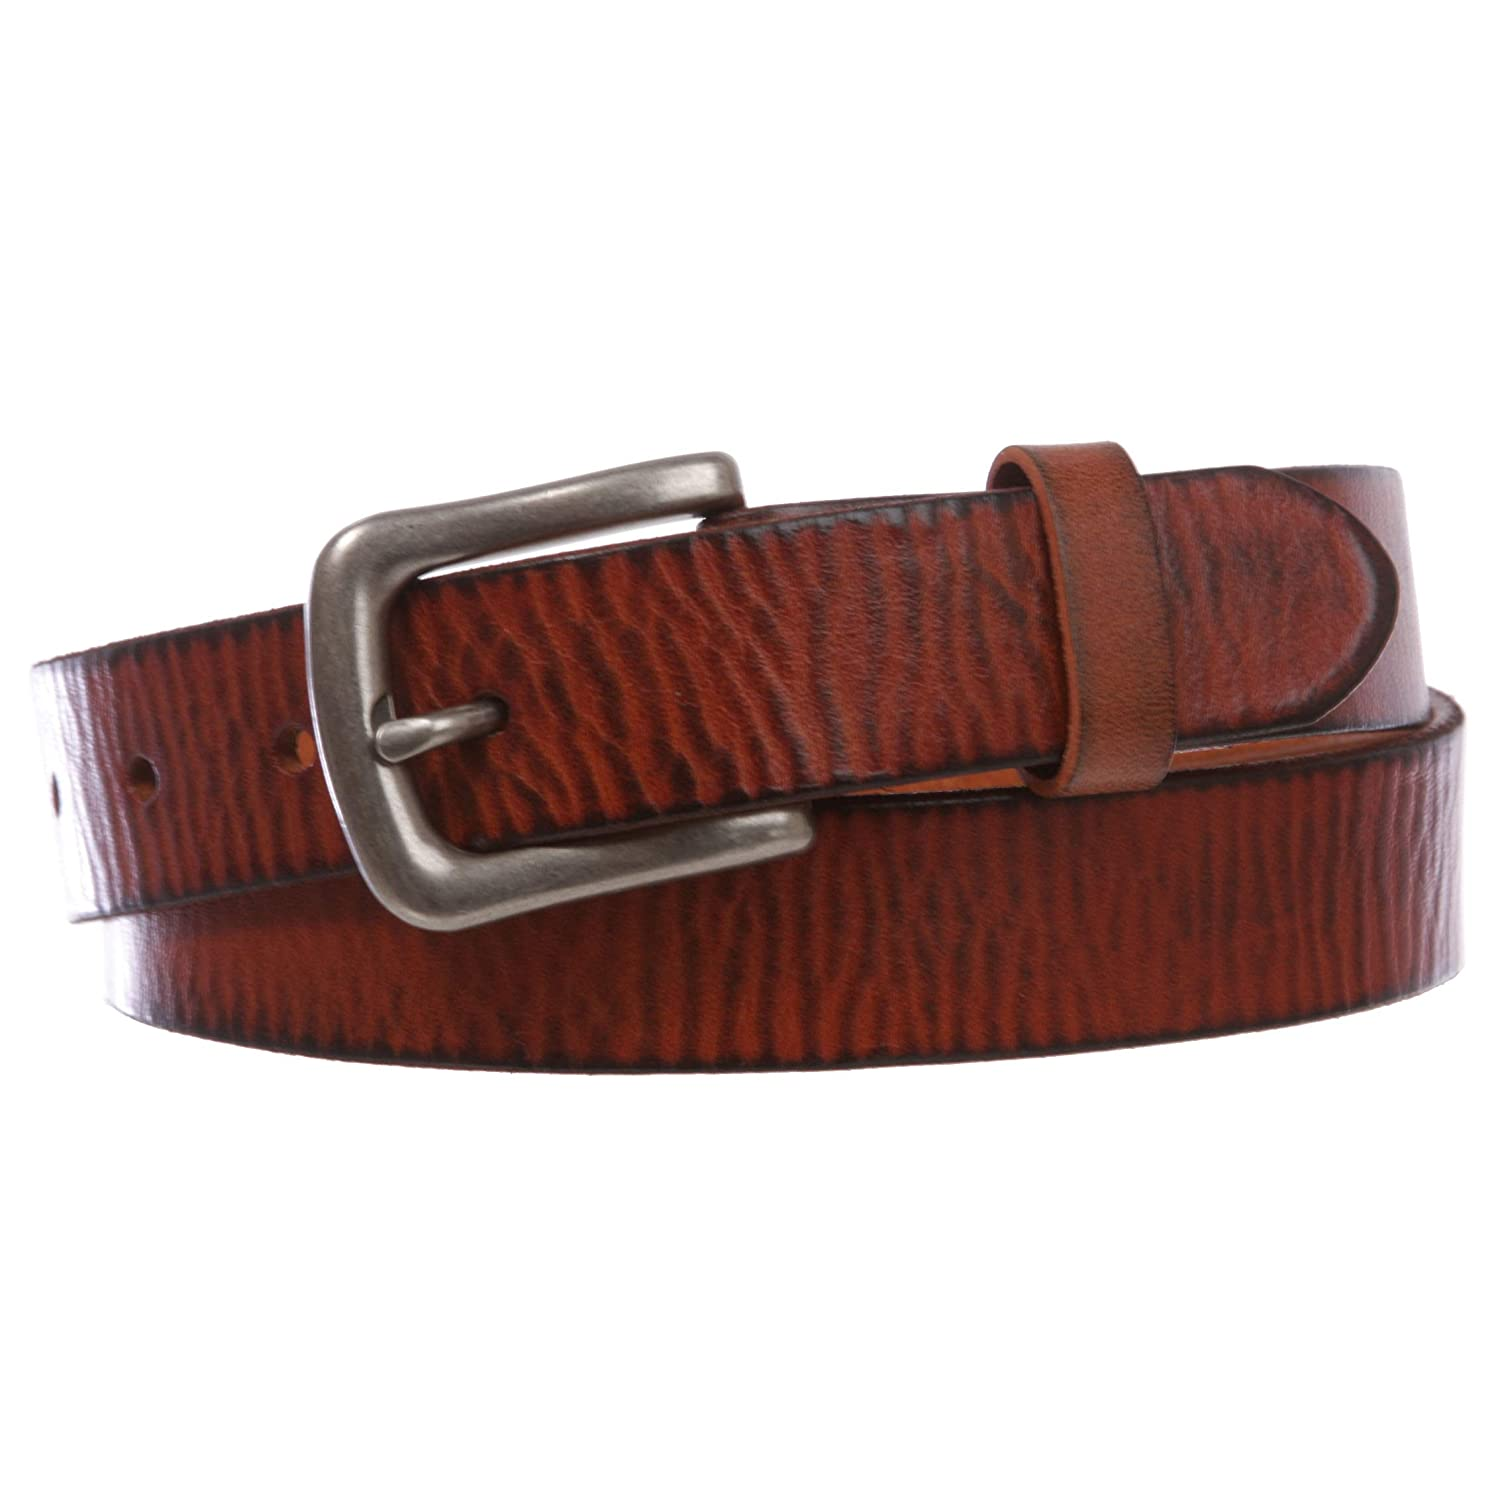 Kids Snap On Top Grain Vintage Genuine Leather Belt, Tan | 30 Inch beltiscool 3706K:011F:A007